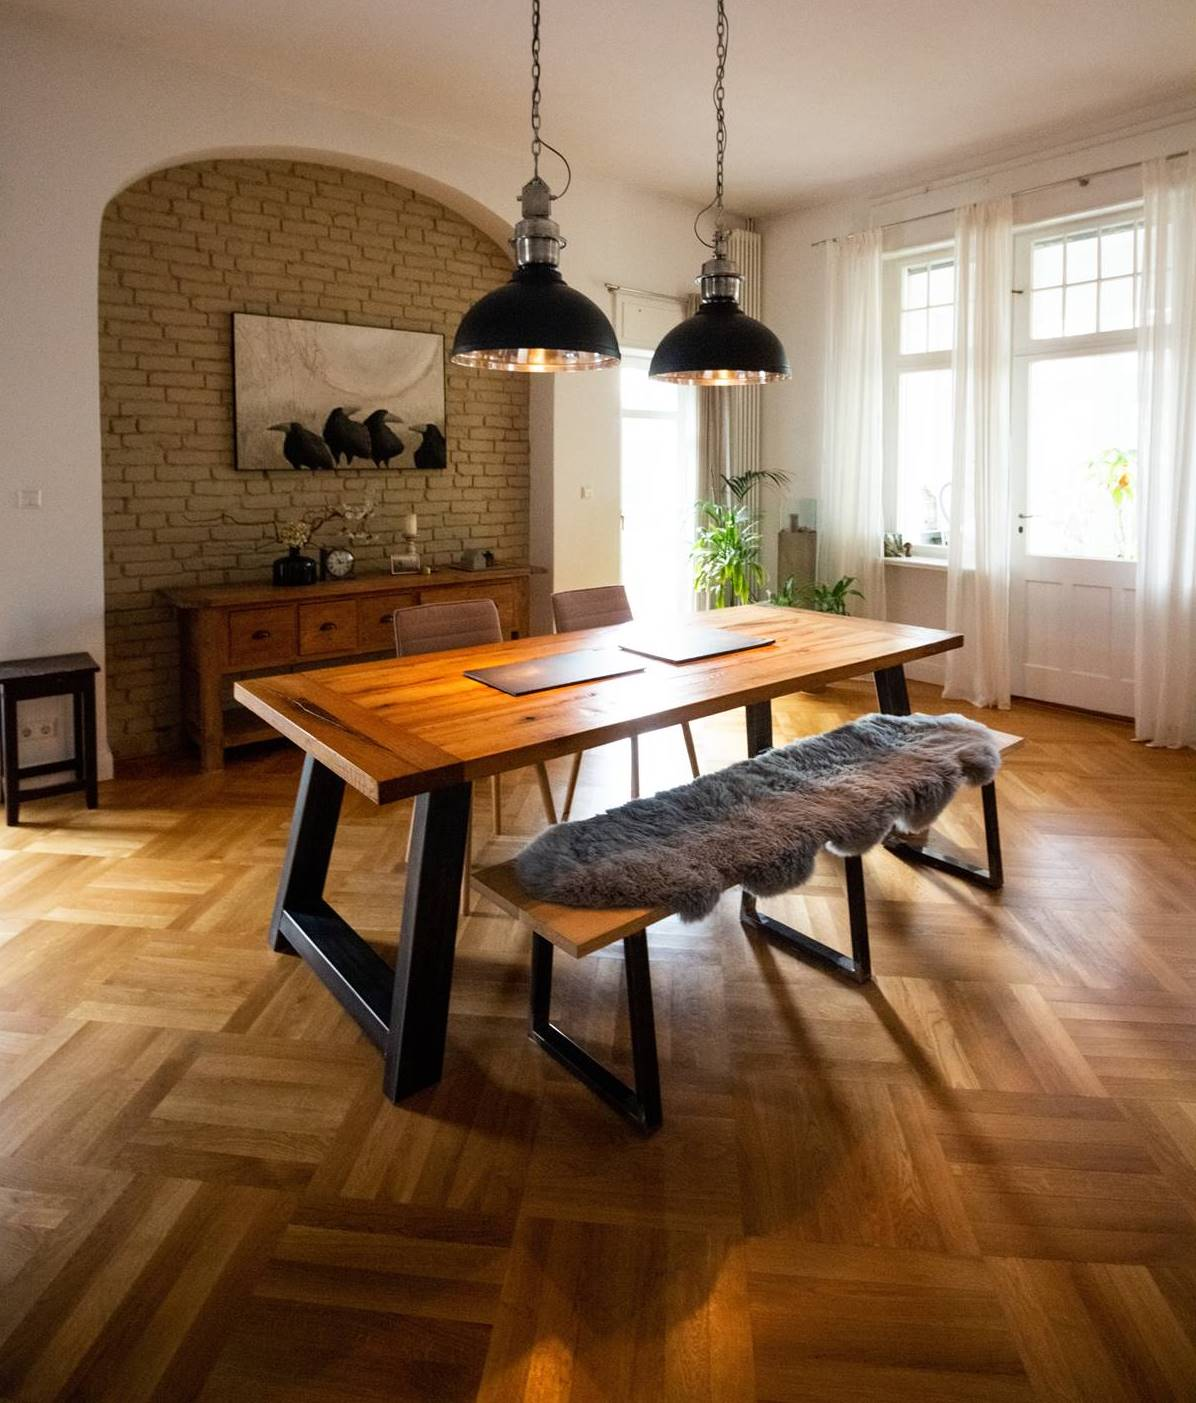 Wooden floors at home